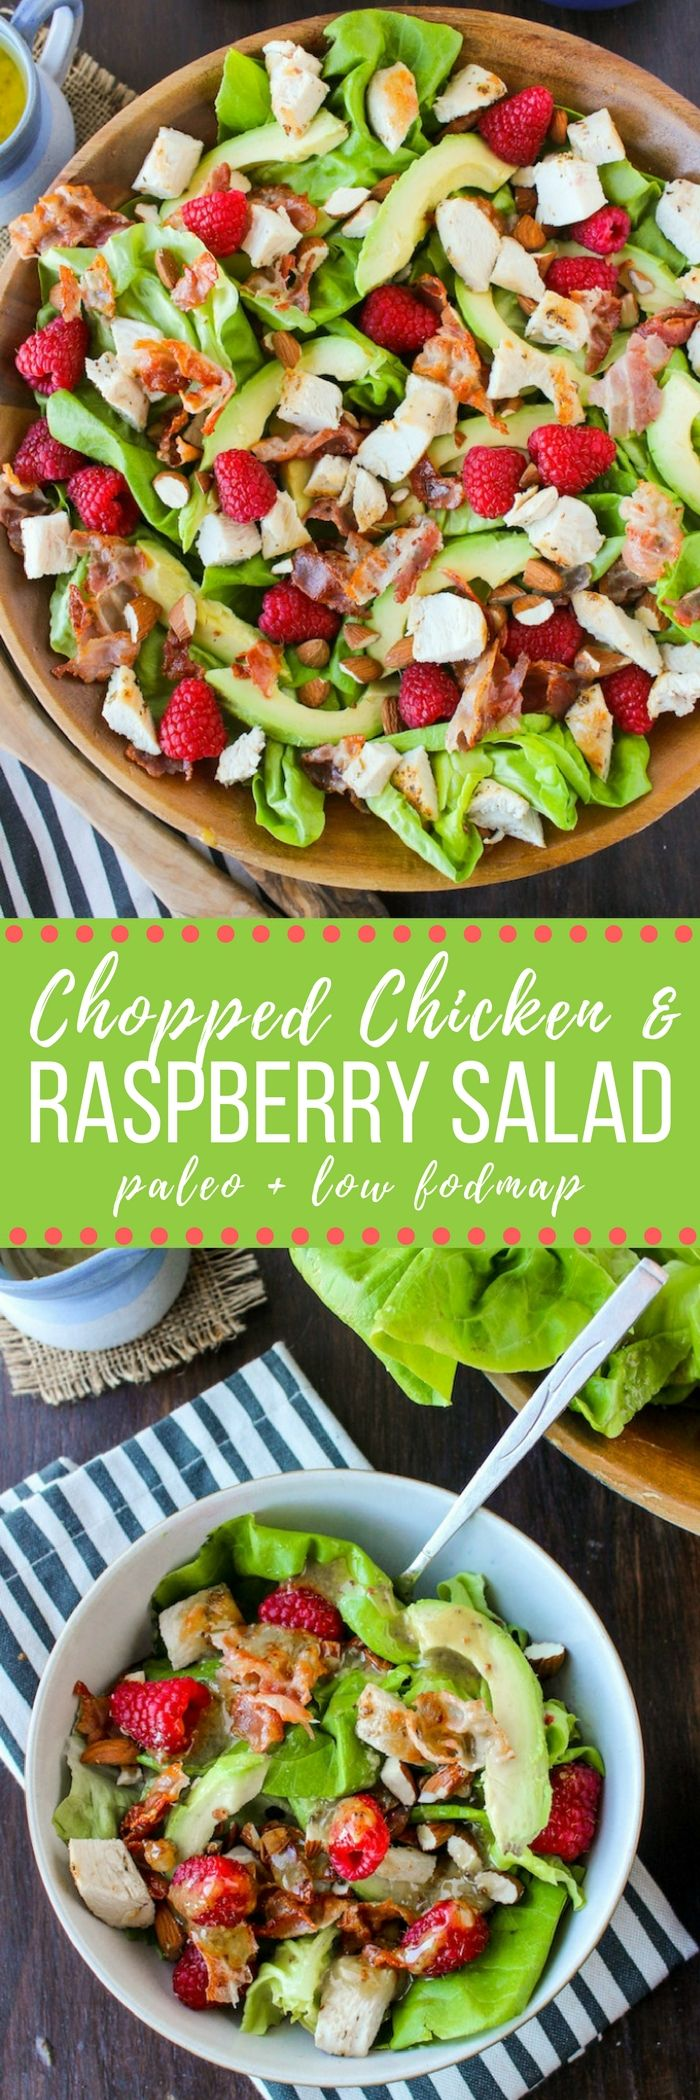 Easy raspberry salad dressing recipes